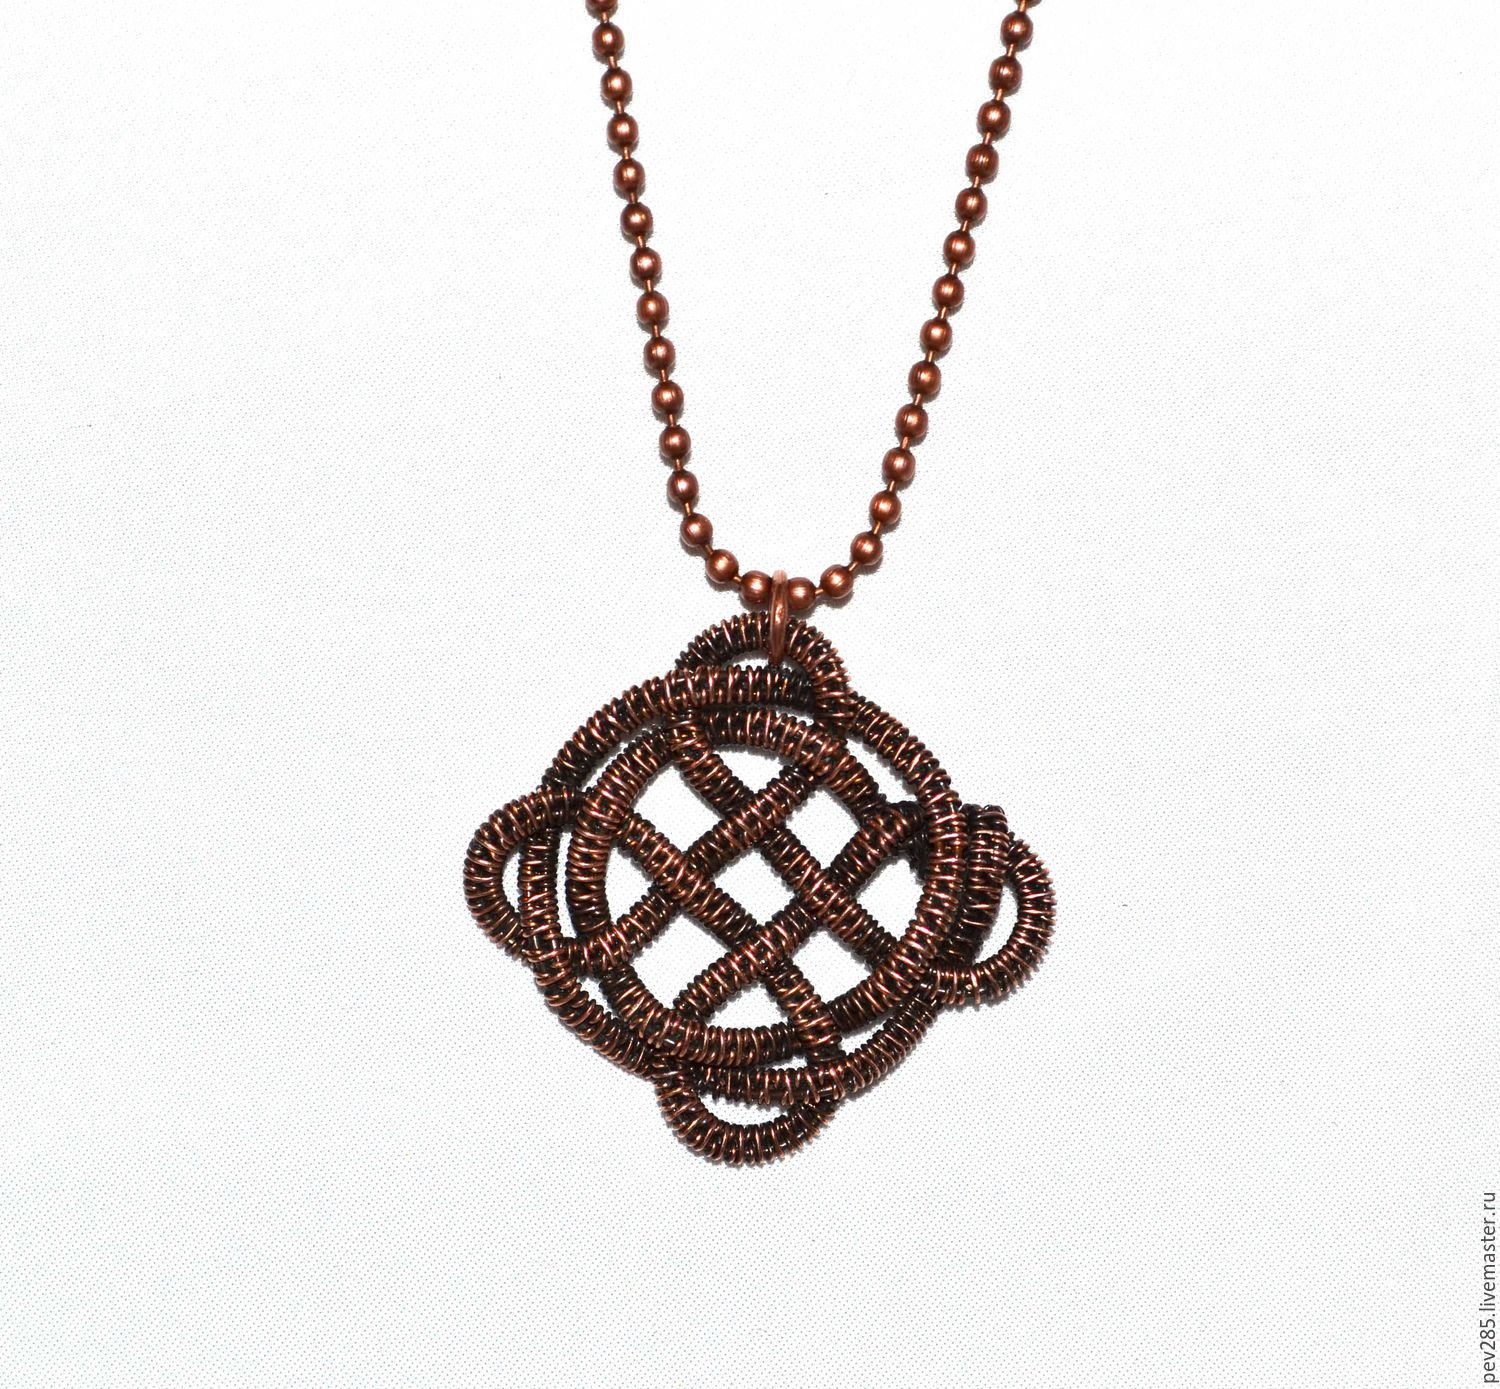 Celtic knot - pendant from the wire in the Wire wrap technique ...